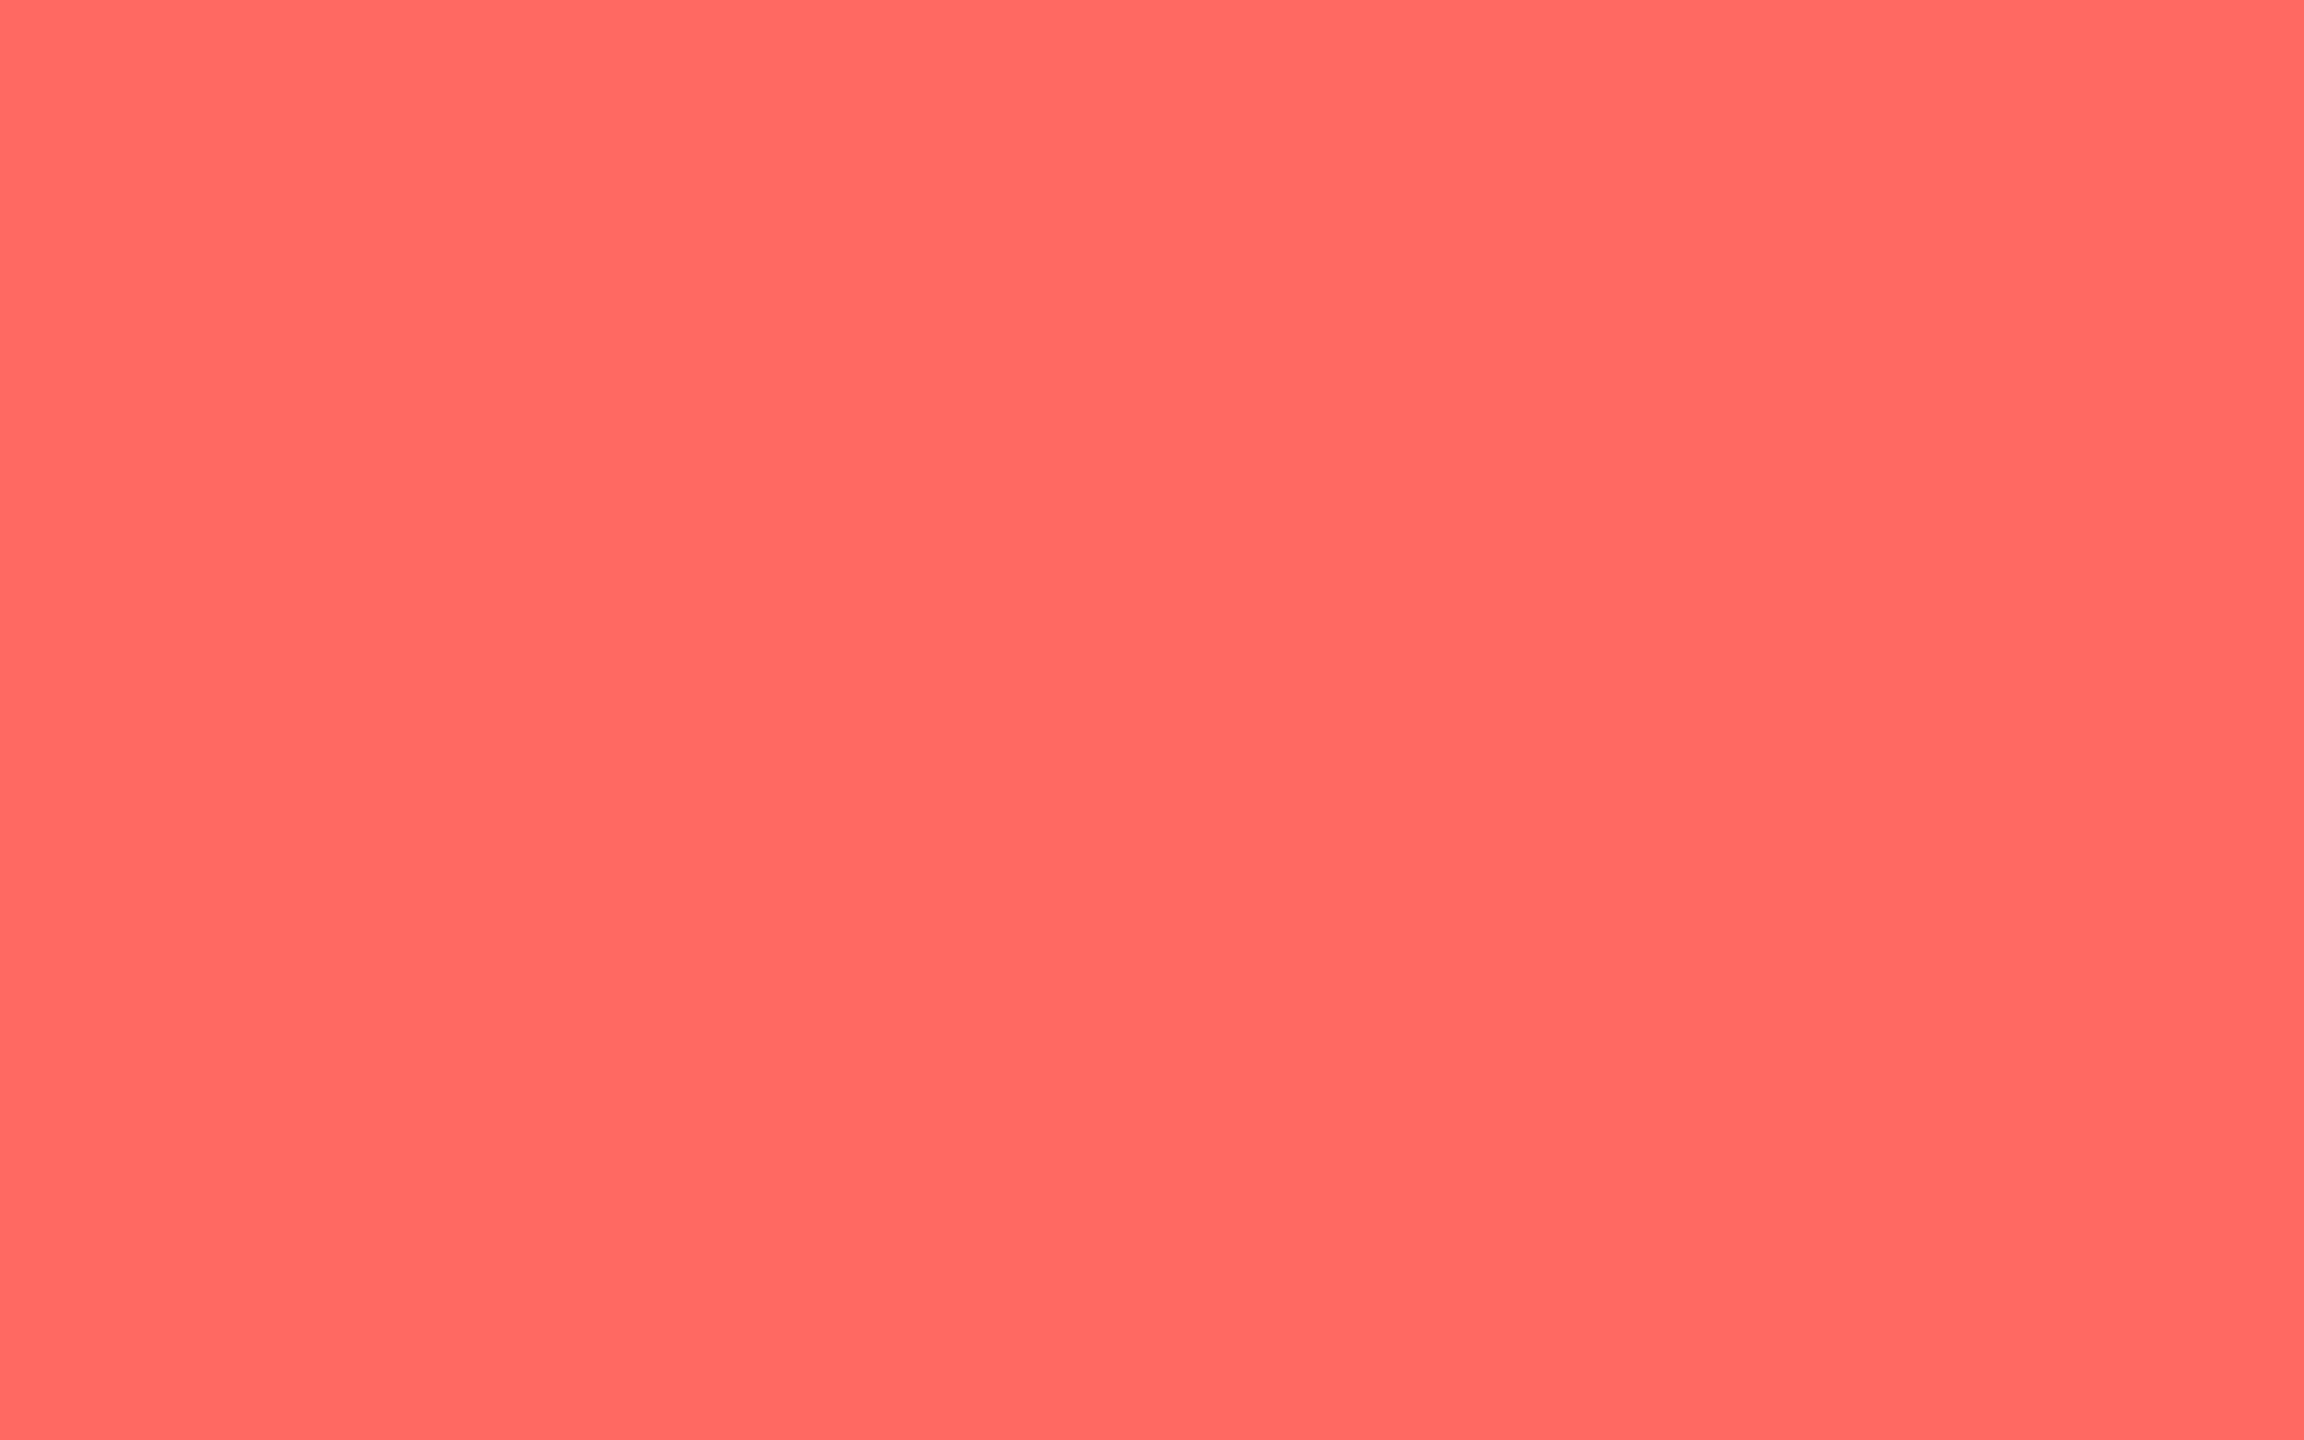 2304x1440 Pastel Red Solid Color Background